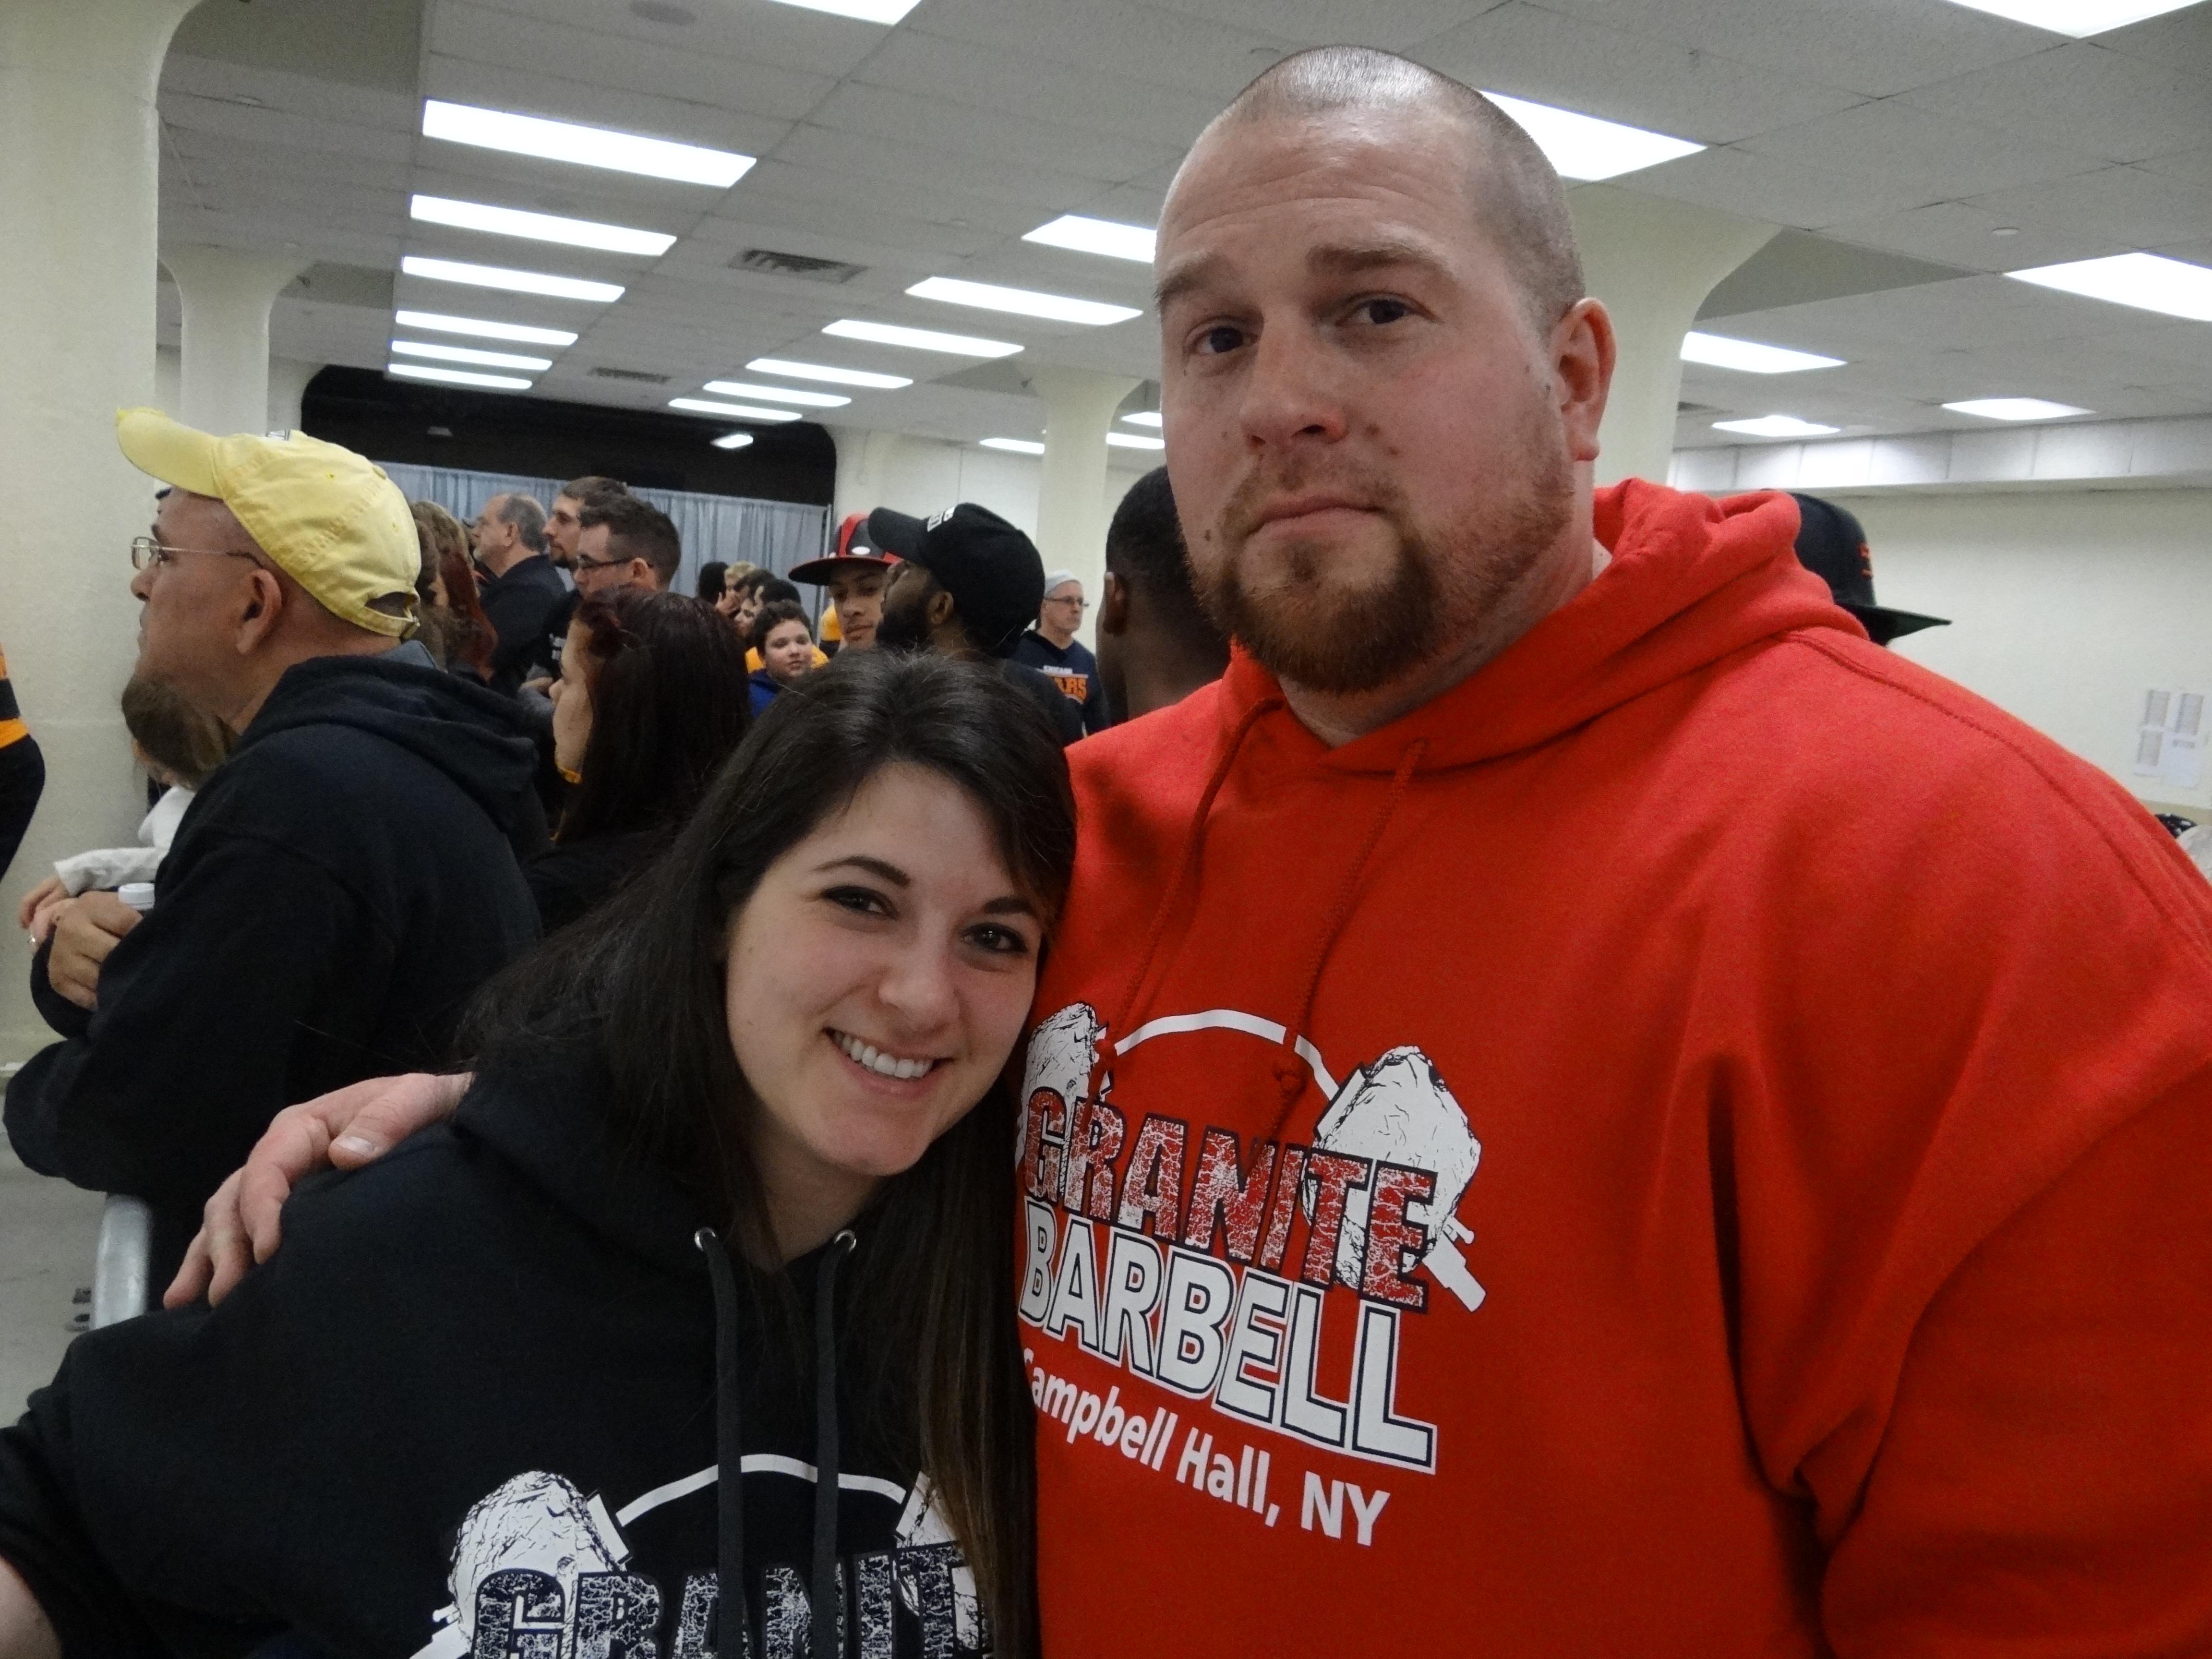 Granite Barbell gym The Granite Barbell Team at New York Strong-est Man & Woman at Westchester County Center White Plains January 21 2017